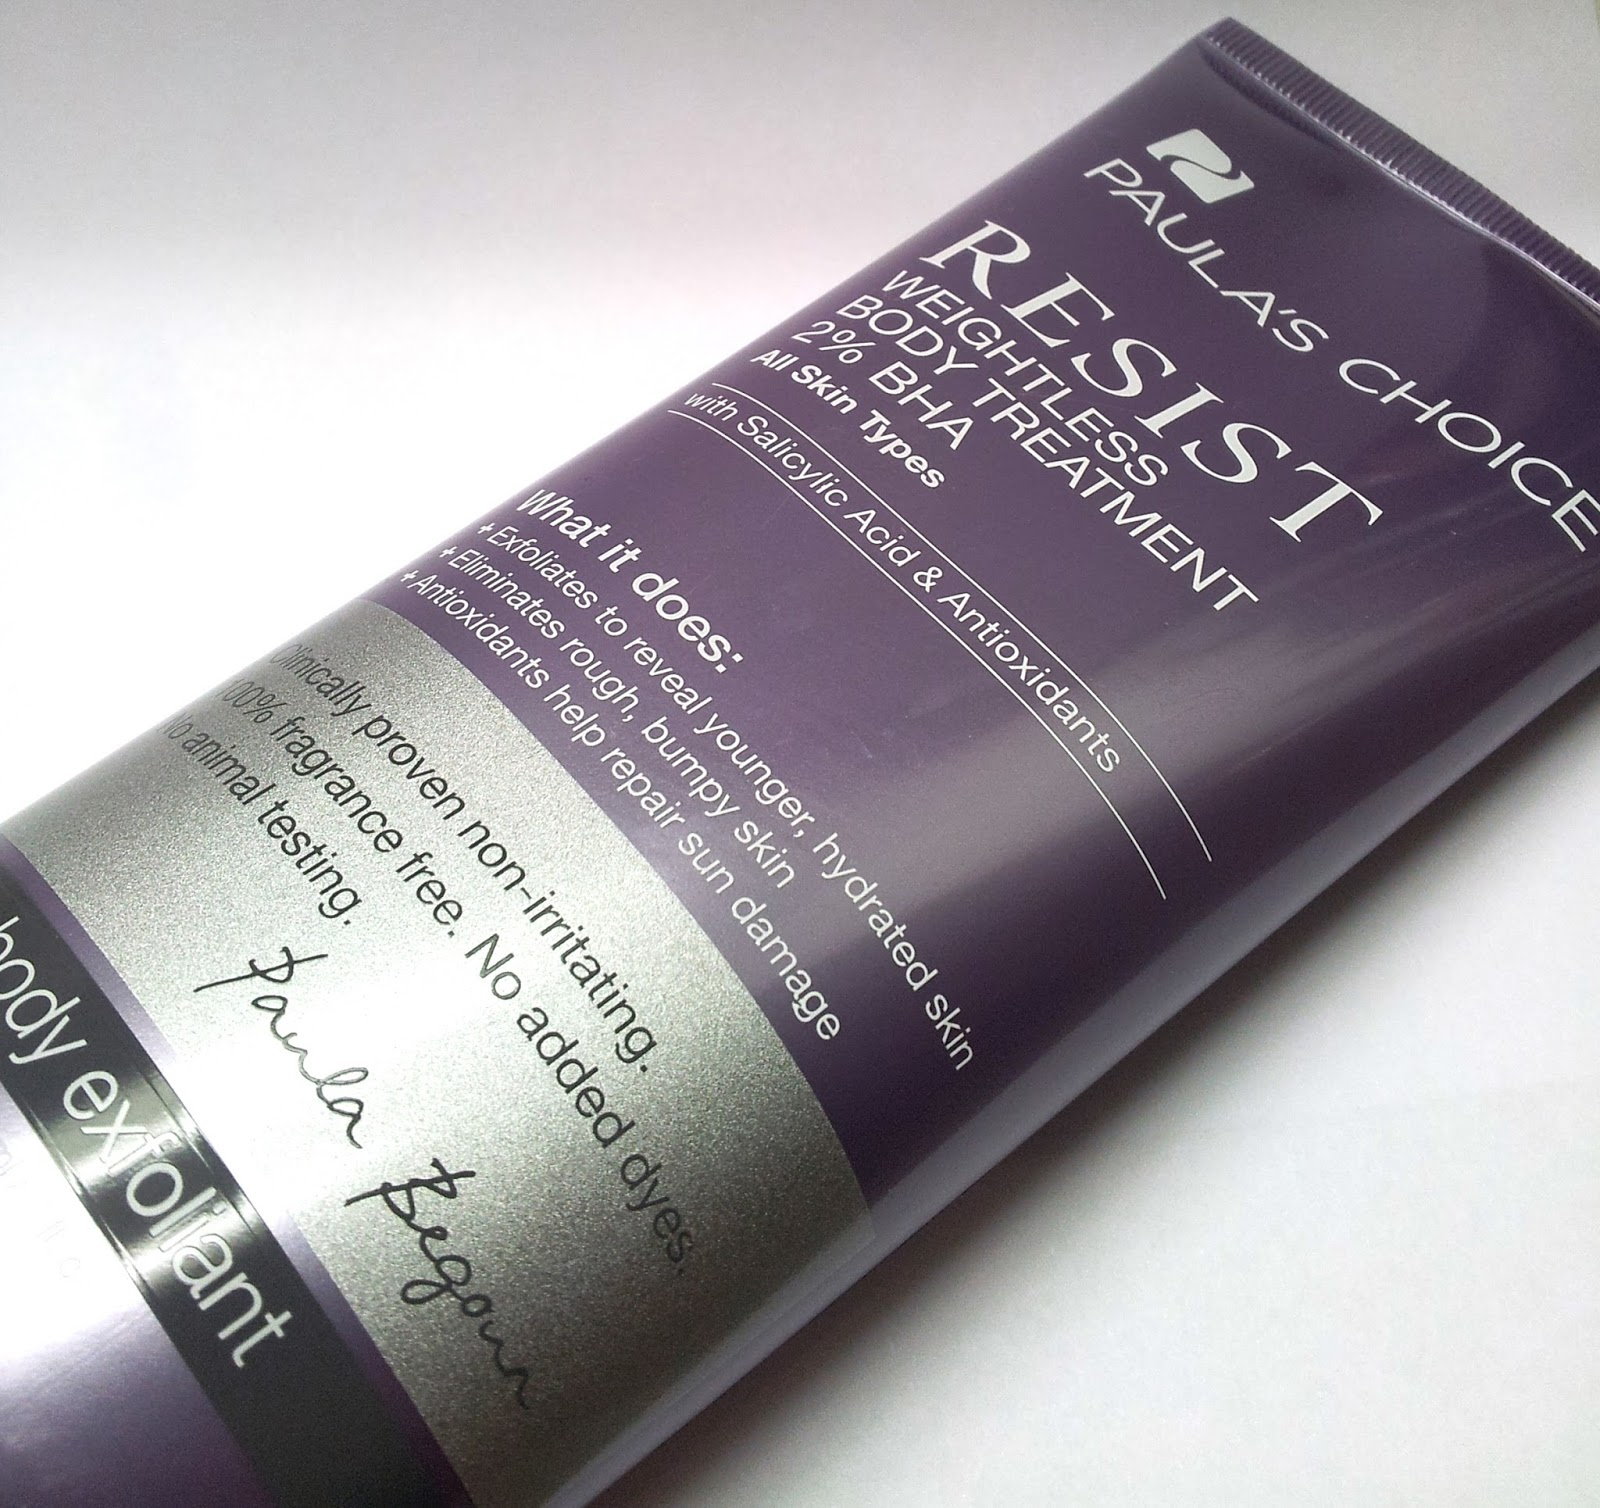 Paula's Choice: Resist Weightless body treatment 2% BHA bei Keratosis Pilaris